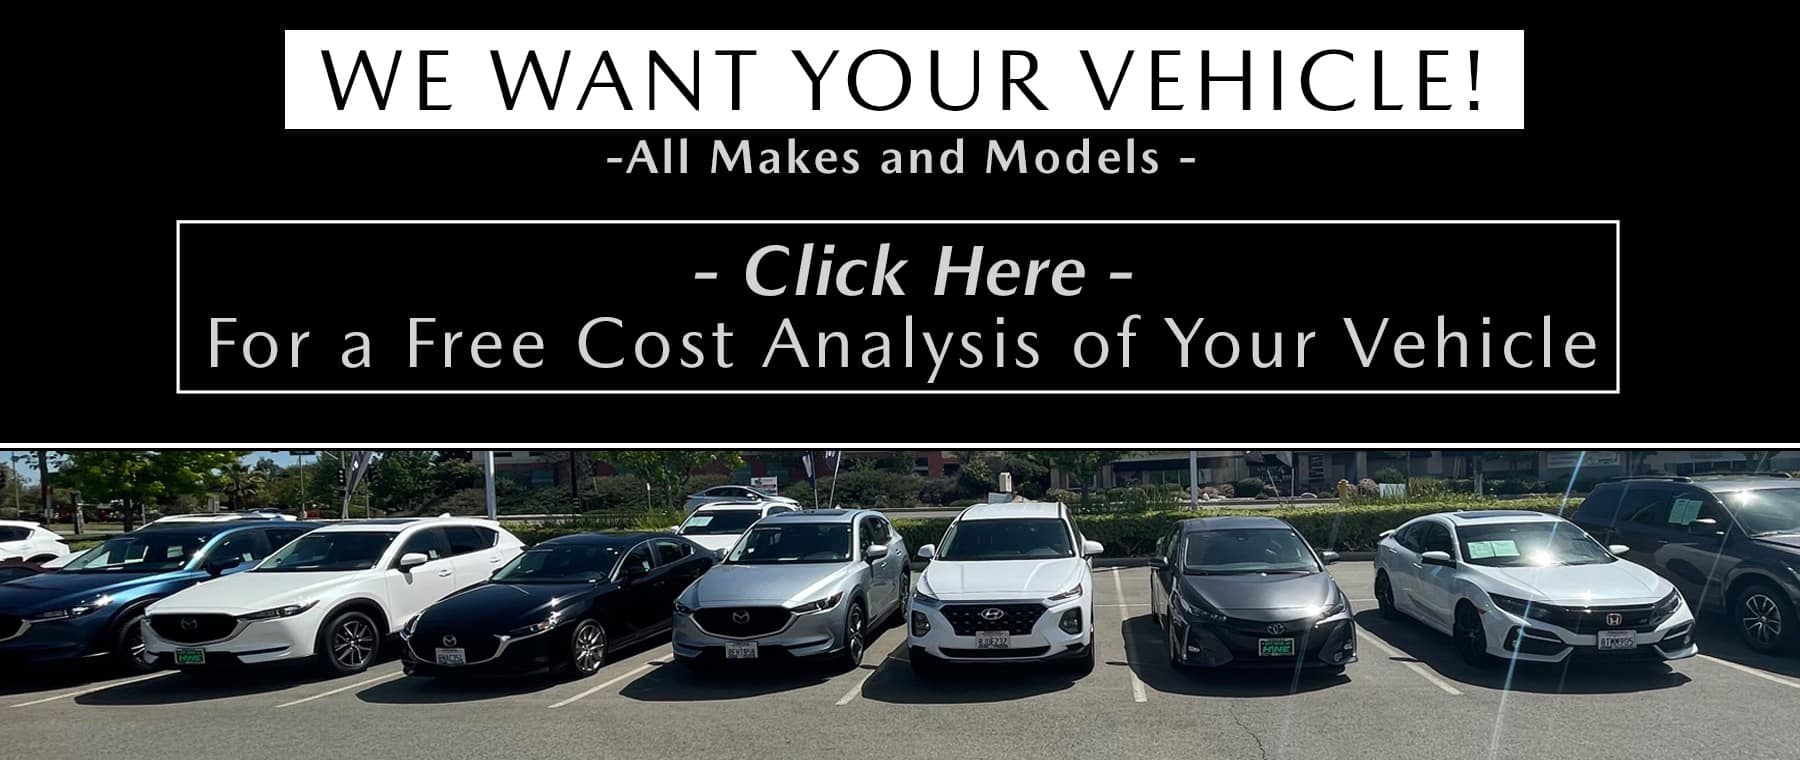 We Want Your Vehicle Home Page copy